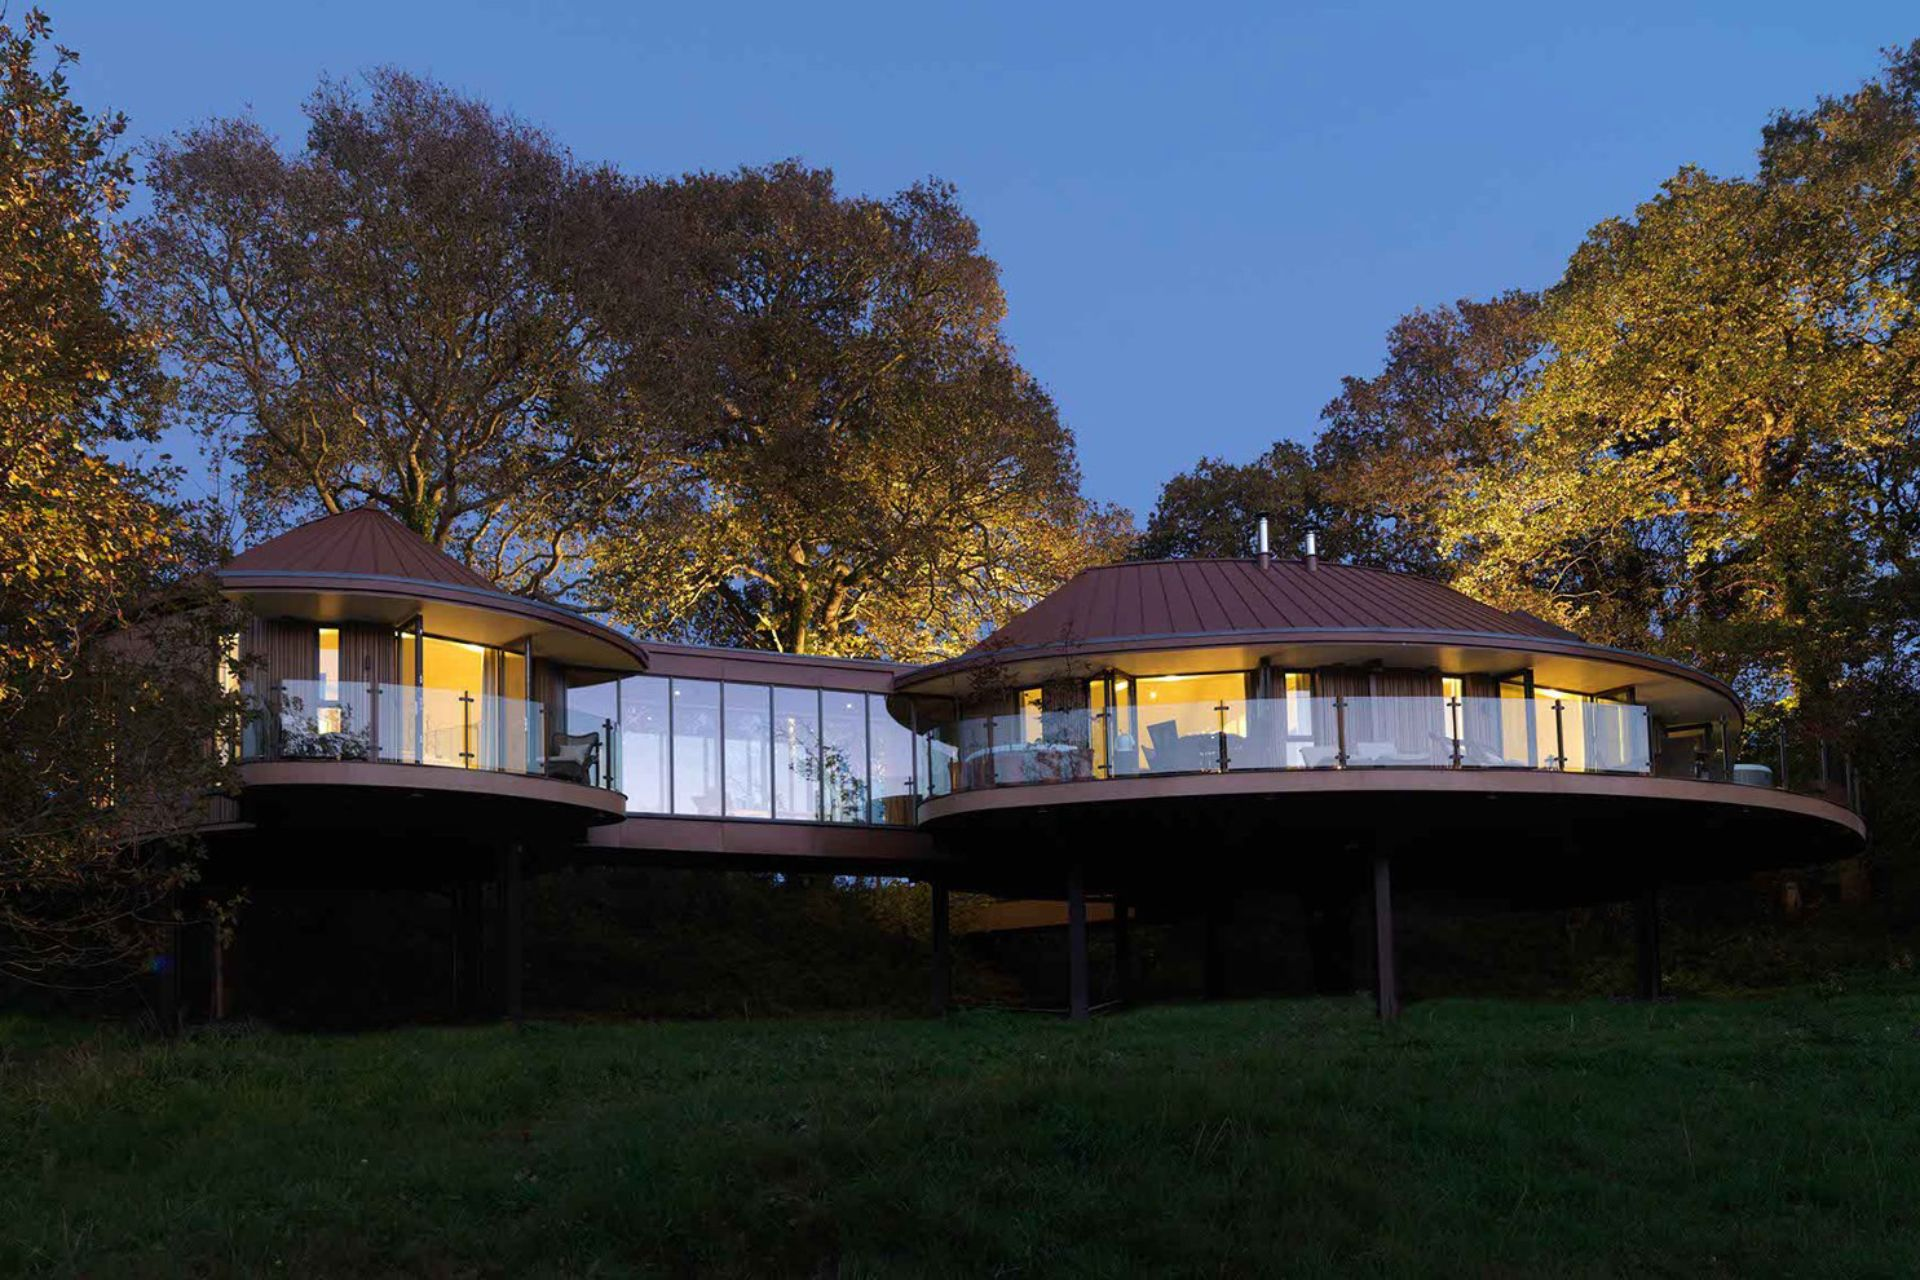 luxurious-treehouse-hotel-on-stilts-lit-up-at-night-chewton-glen-new-forest-hampshire